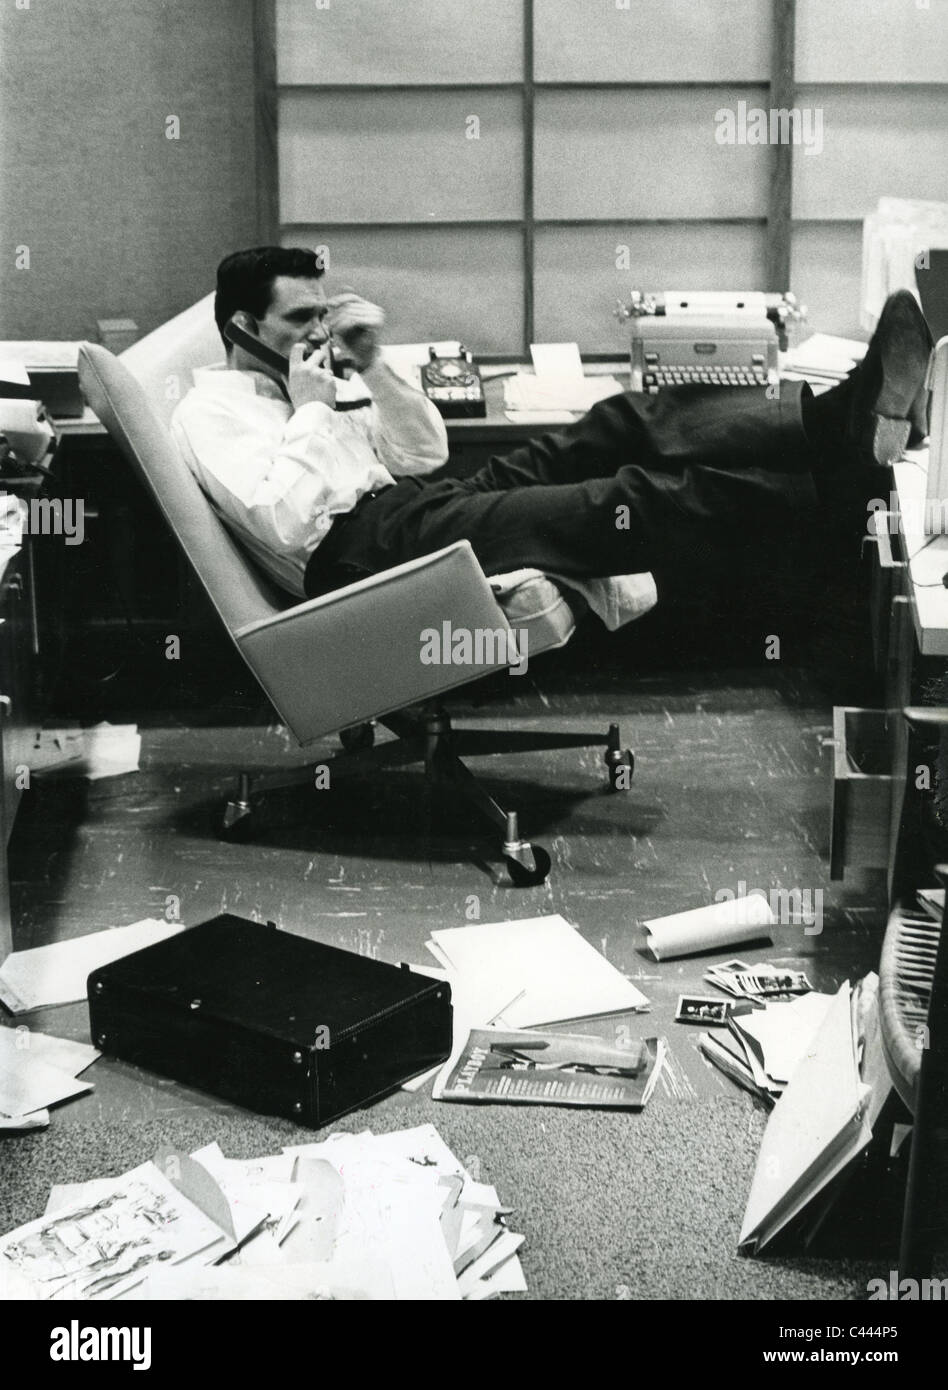 HUGH HEFNER founder of Playboy magazine in his office about 1965 - Stock Image